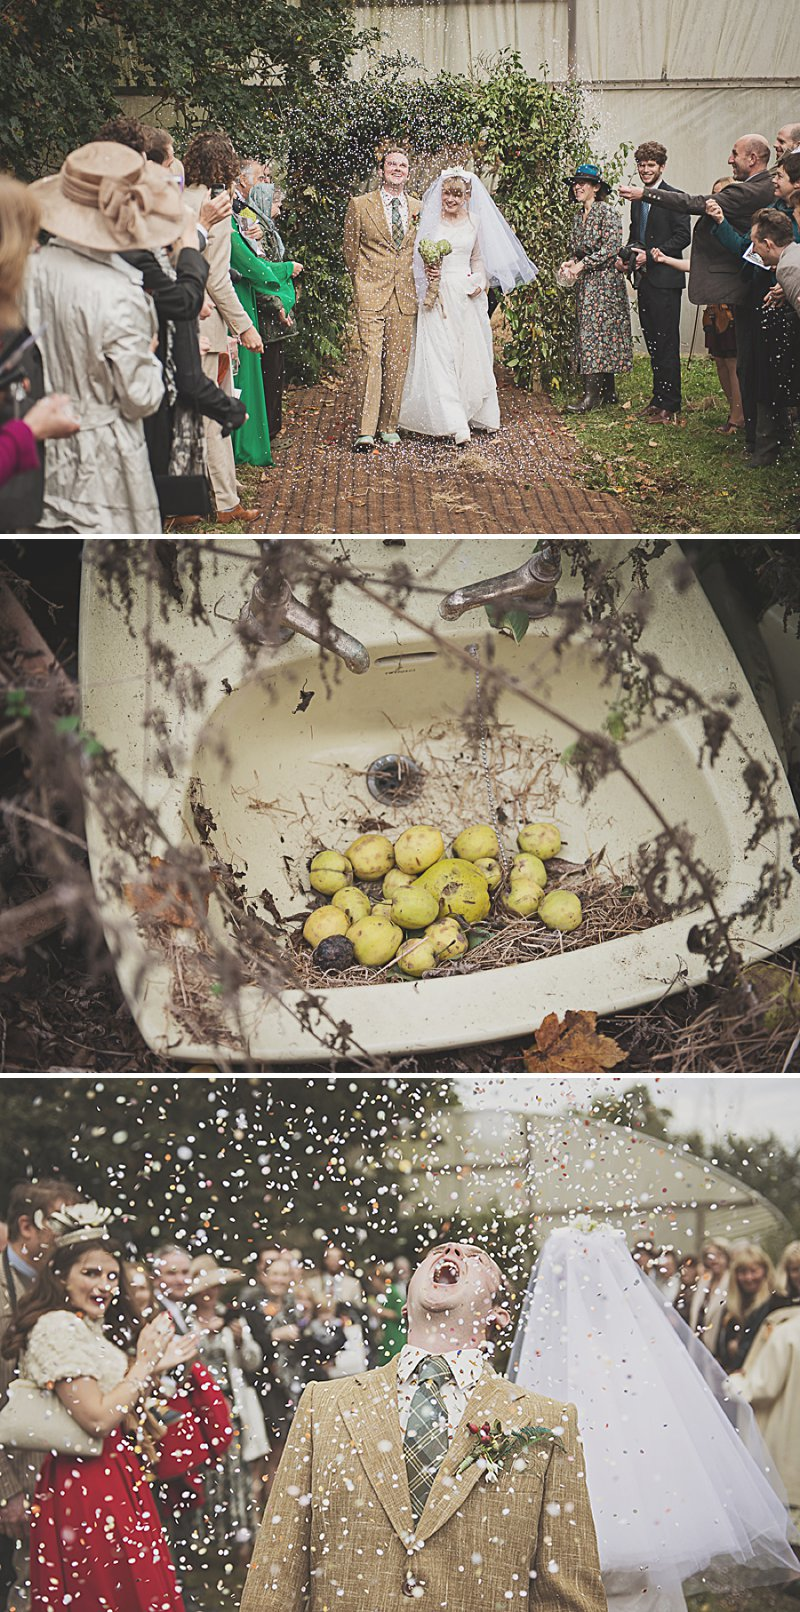 A DIY Wedding with homemade flowers, flamingo art, a polytunnel ceremony, apples, pumpkins, vintage dress and suit and vegetable bouquets.  Apple sharing ceremony at home with photography by Camilla Rosa_0010